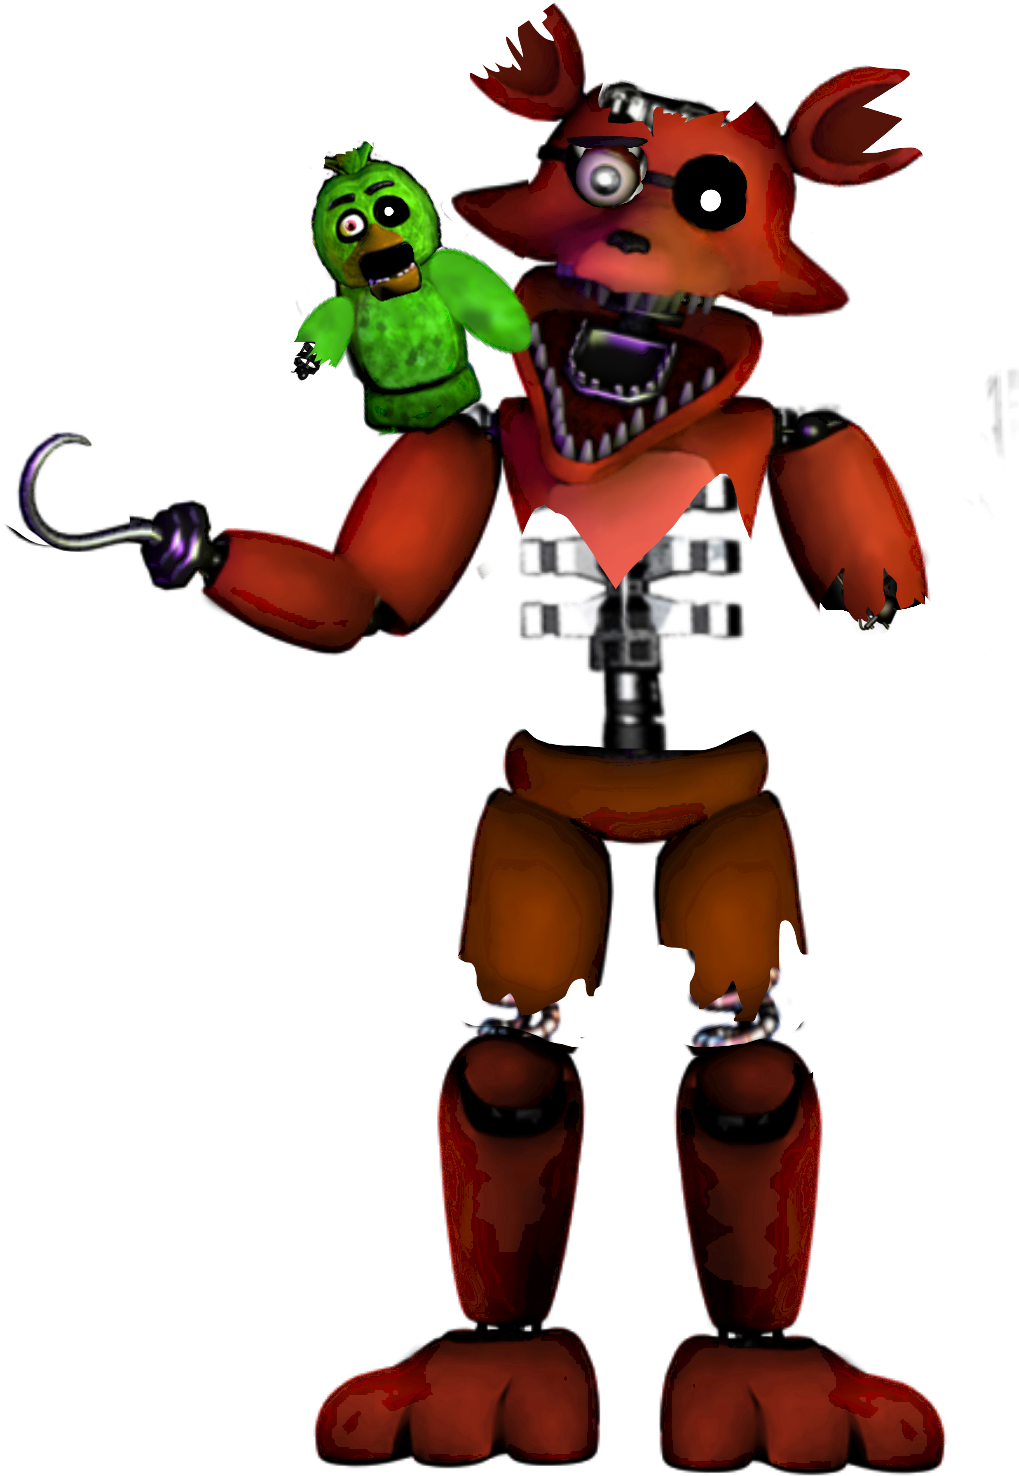 Foxy transparent withered. Download hd fnaf stylized